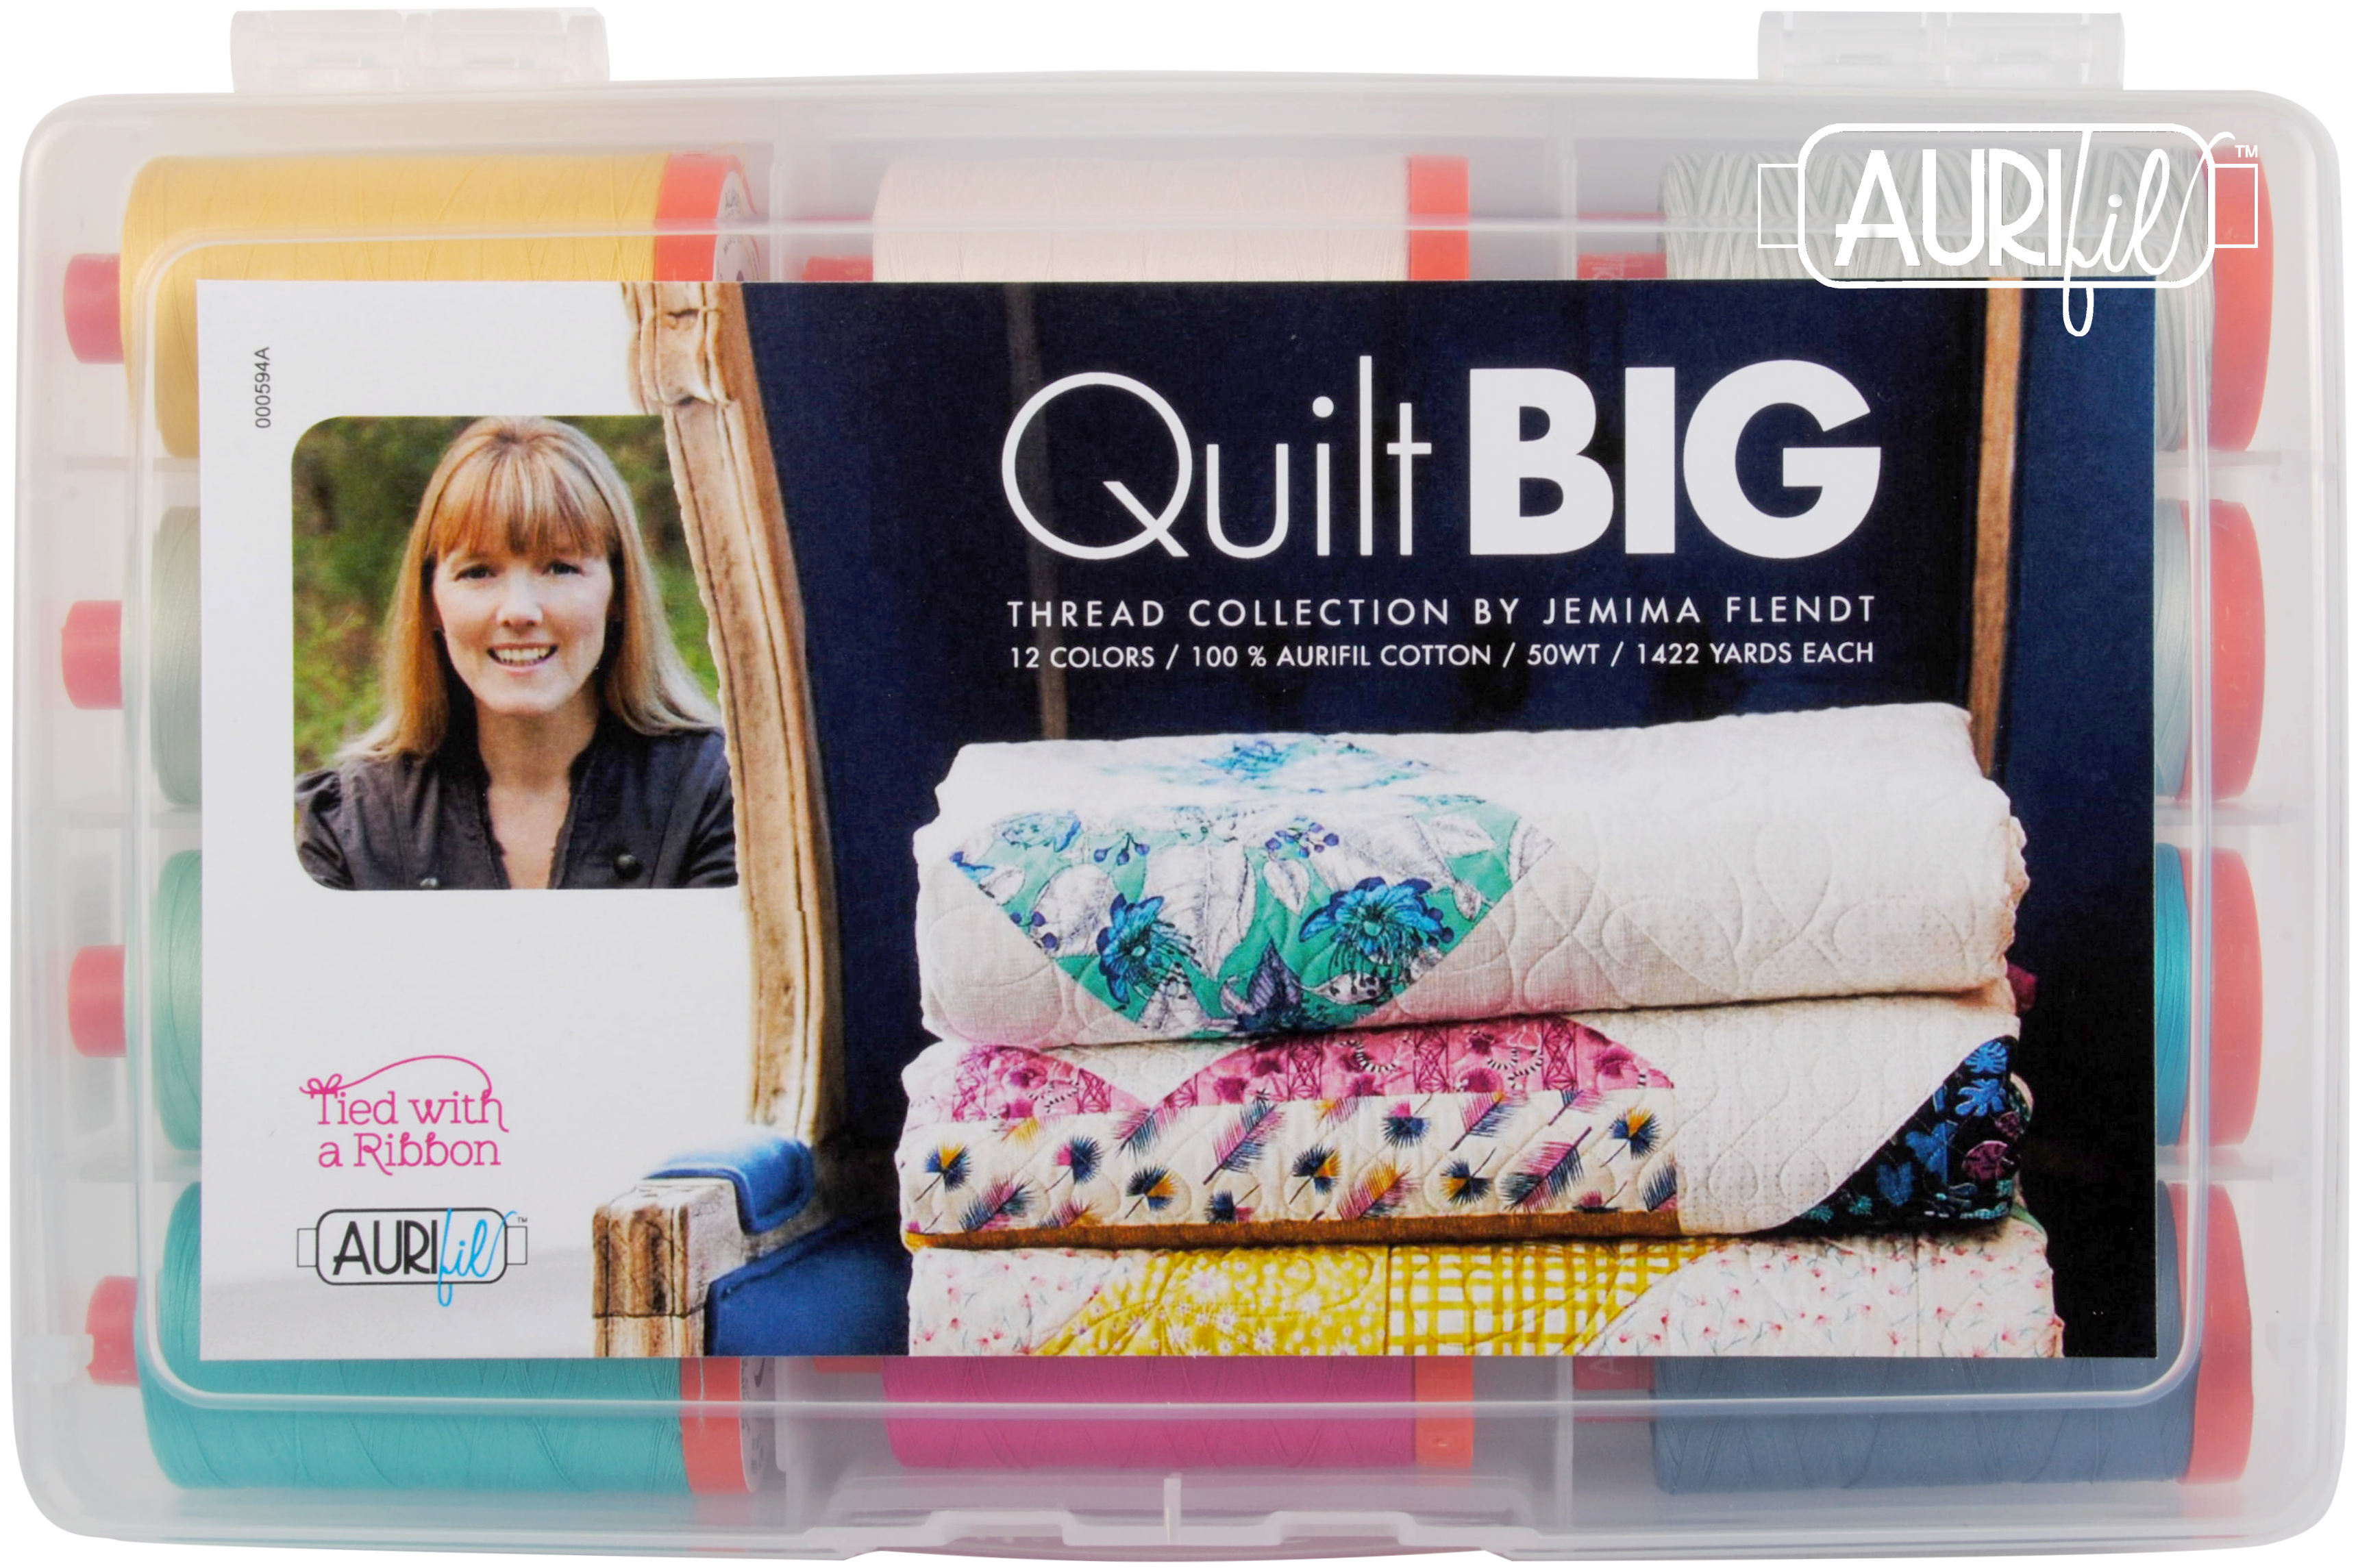 Auriful Quilt Big Collection by Jemima Flendt